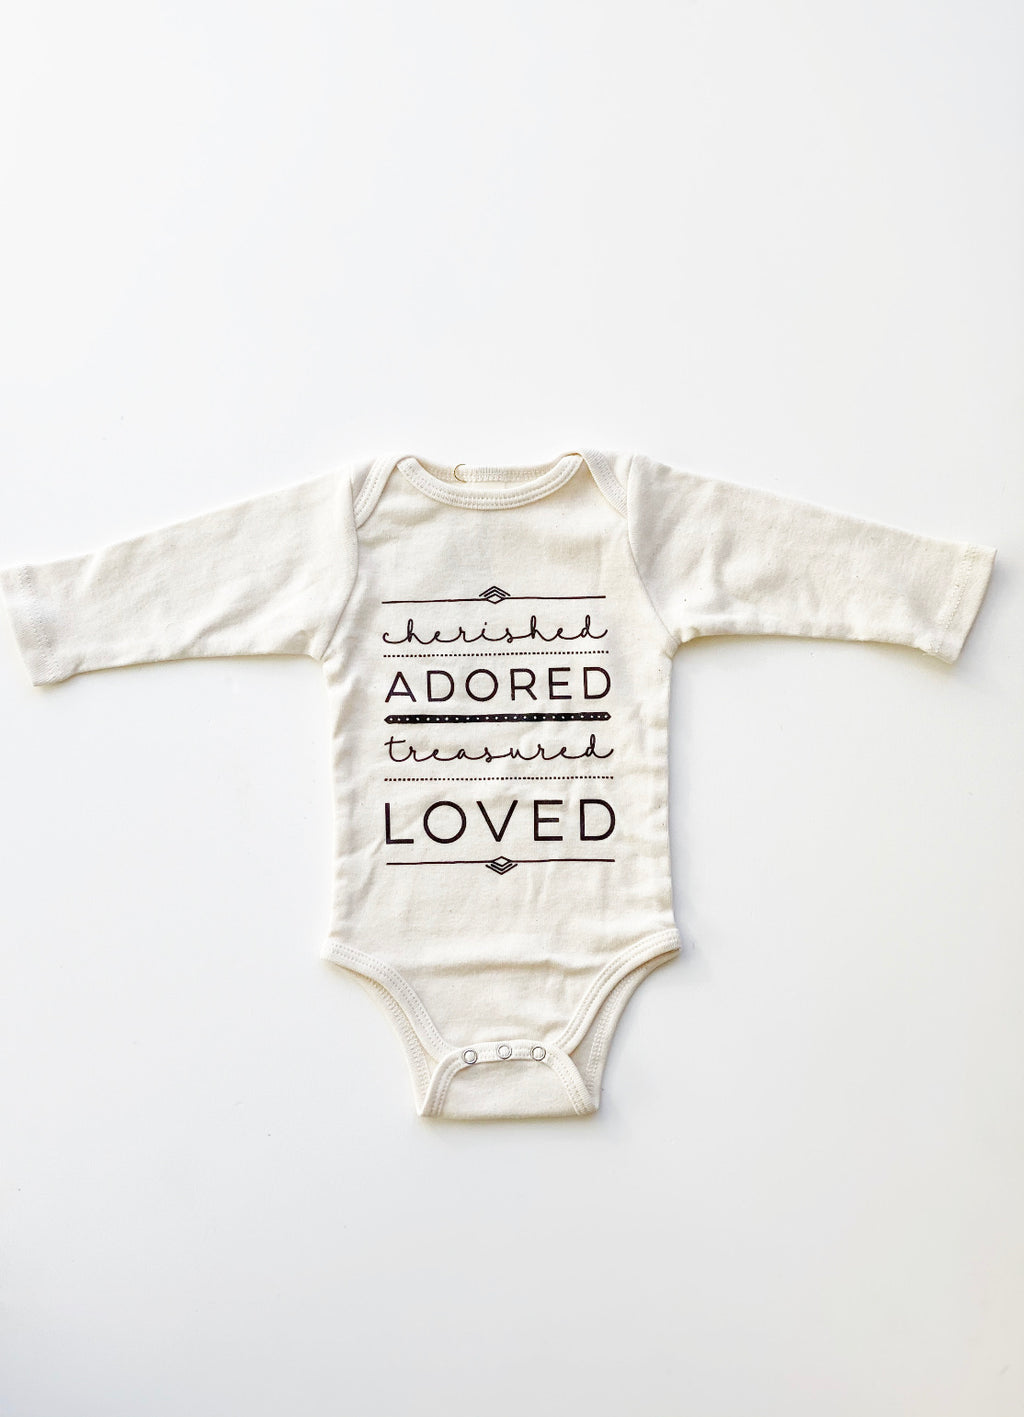 Cream Cherished, Adored, Treasured, Loved Organic Bodysuit 0-3M